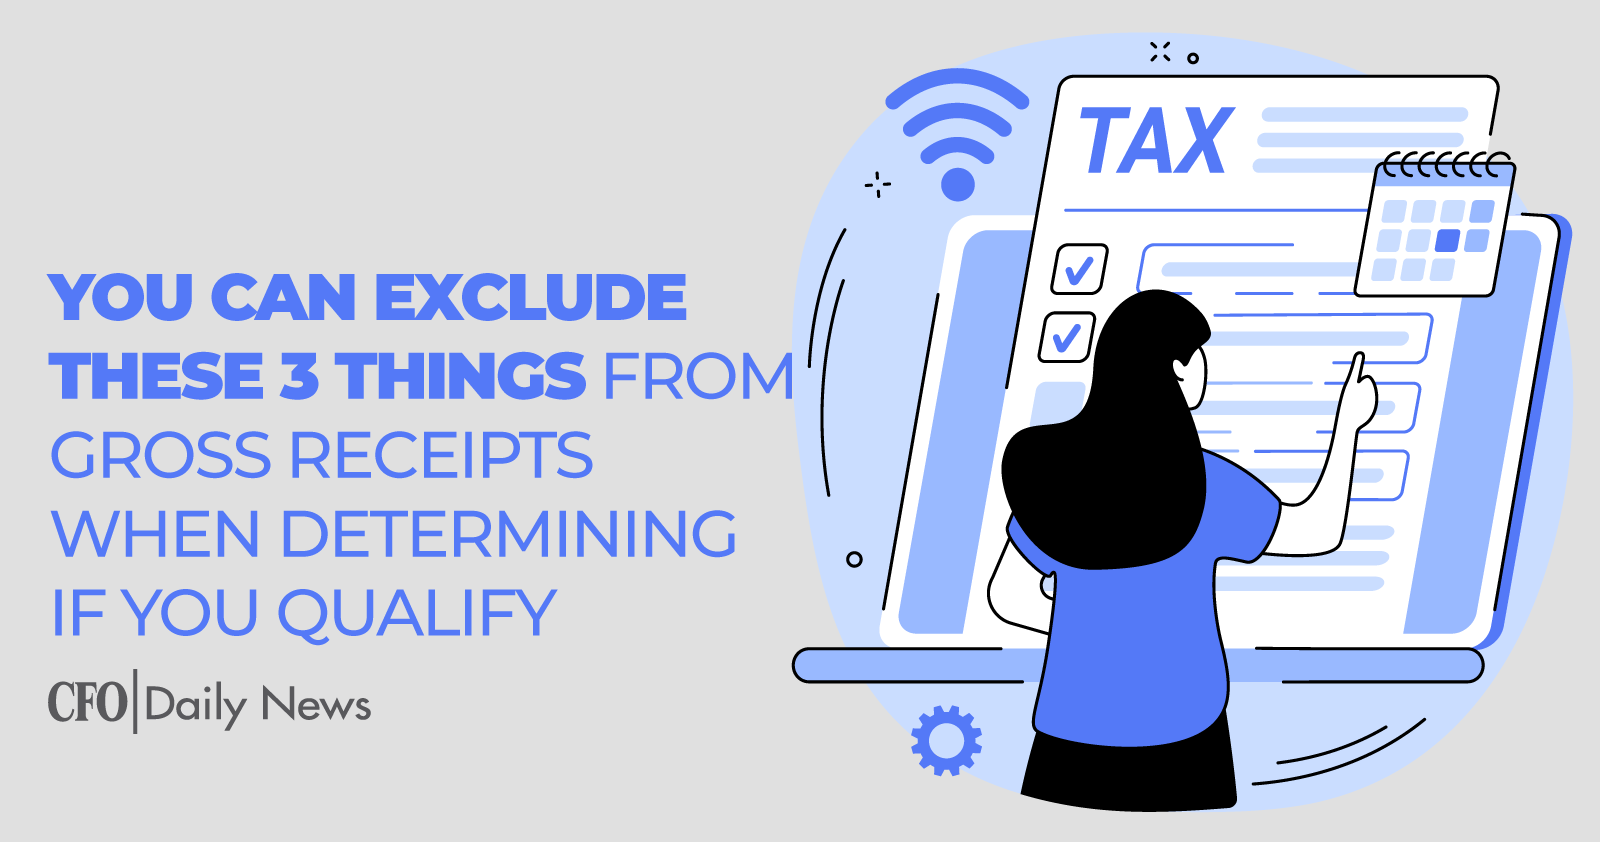 You Can Exclude These 3 Things From Gross Receipts When Determining If You Qualify